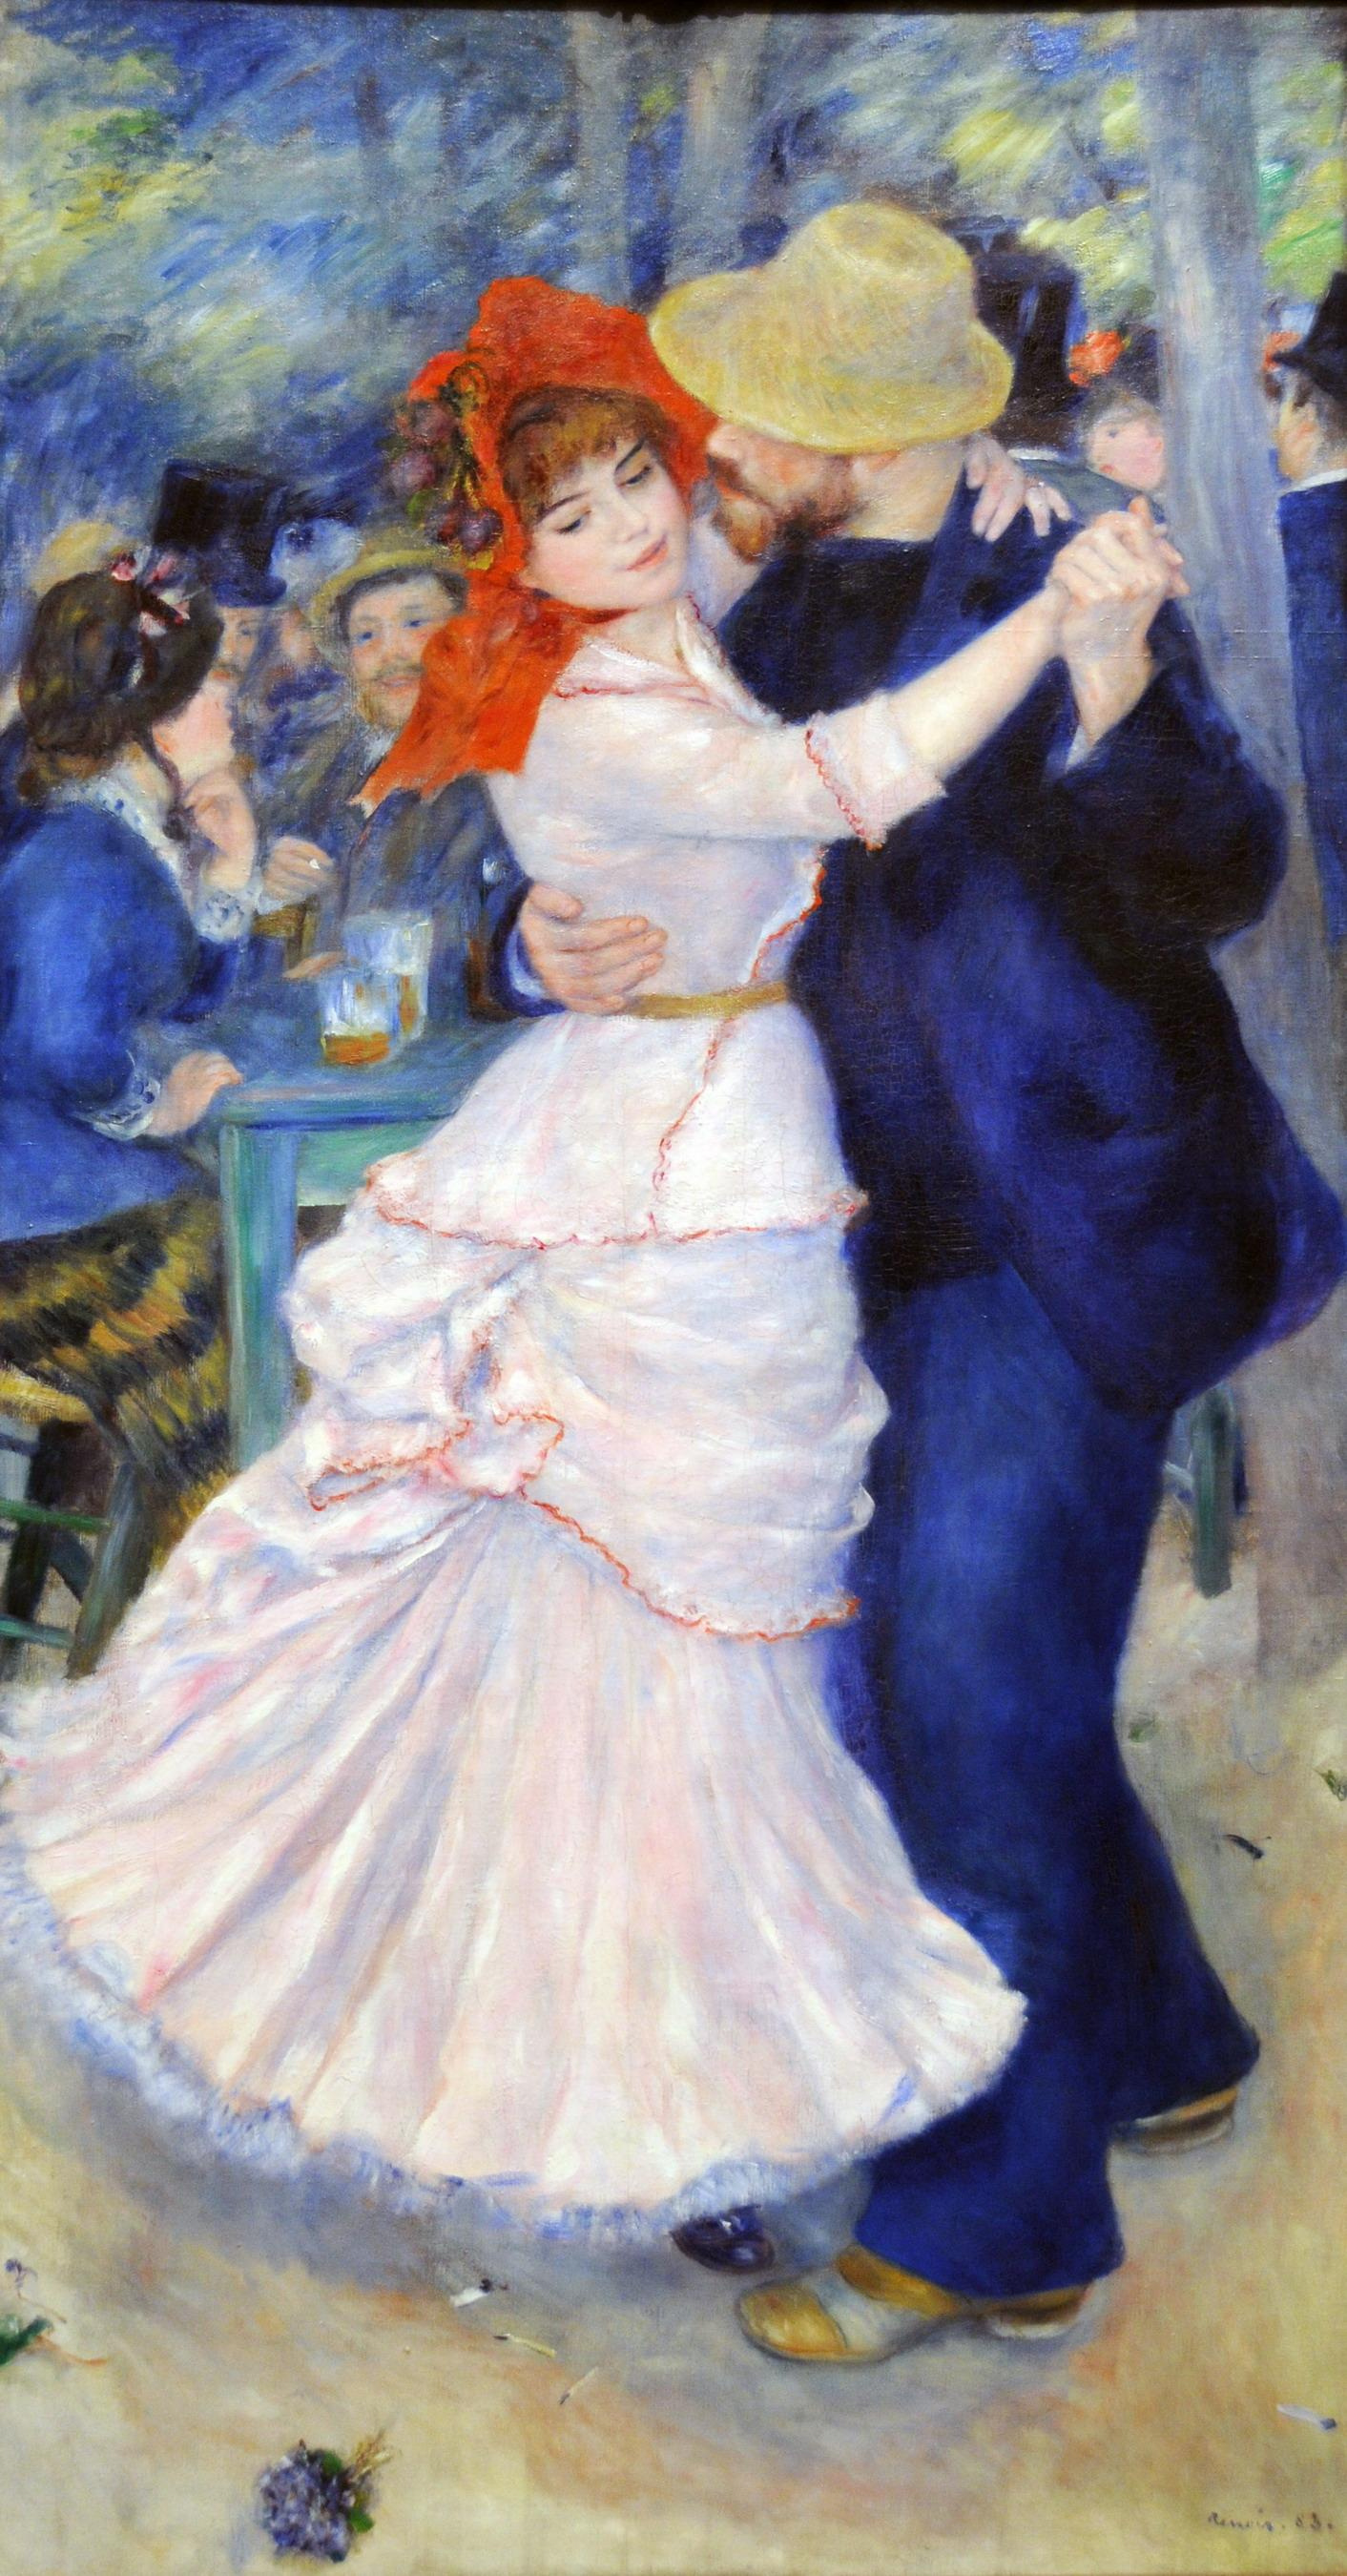 Pierre-Auguste Renoir. Dance at Bougival